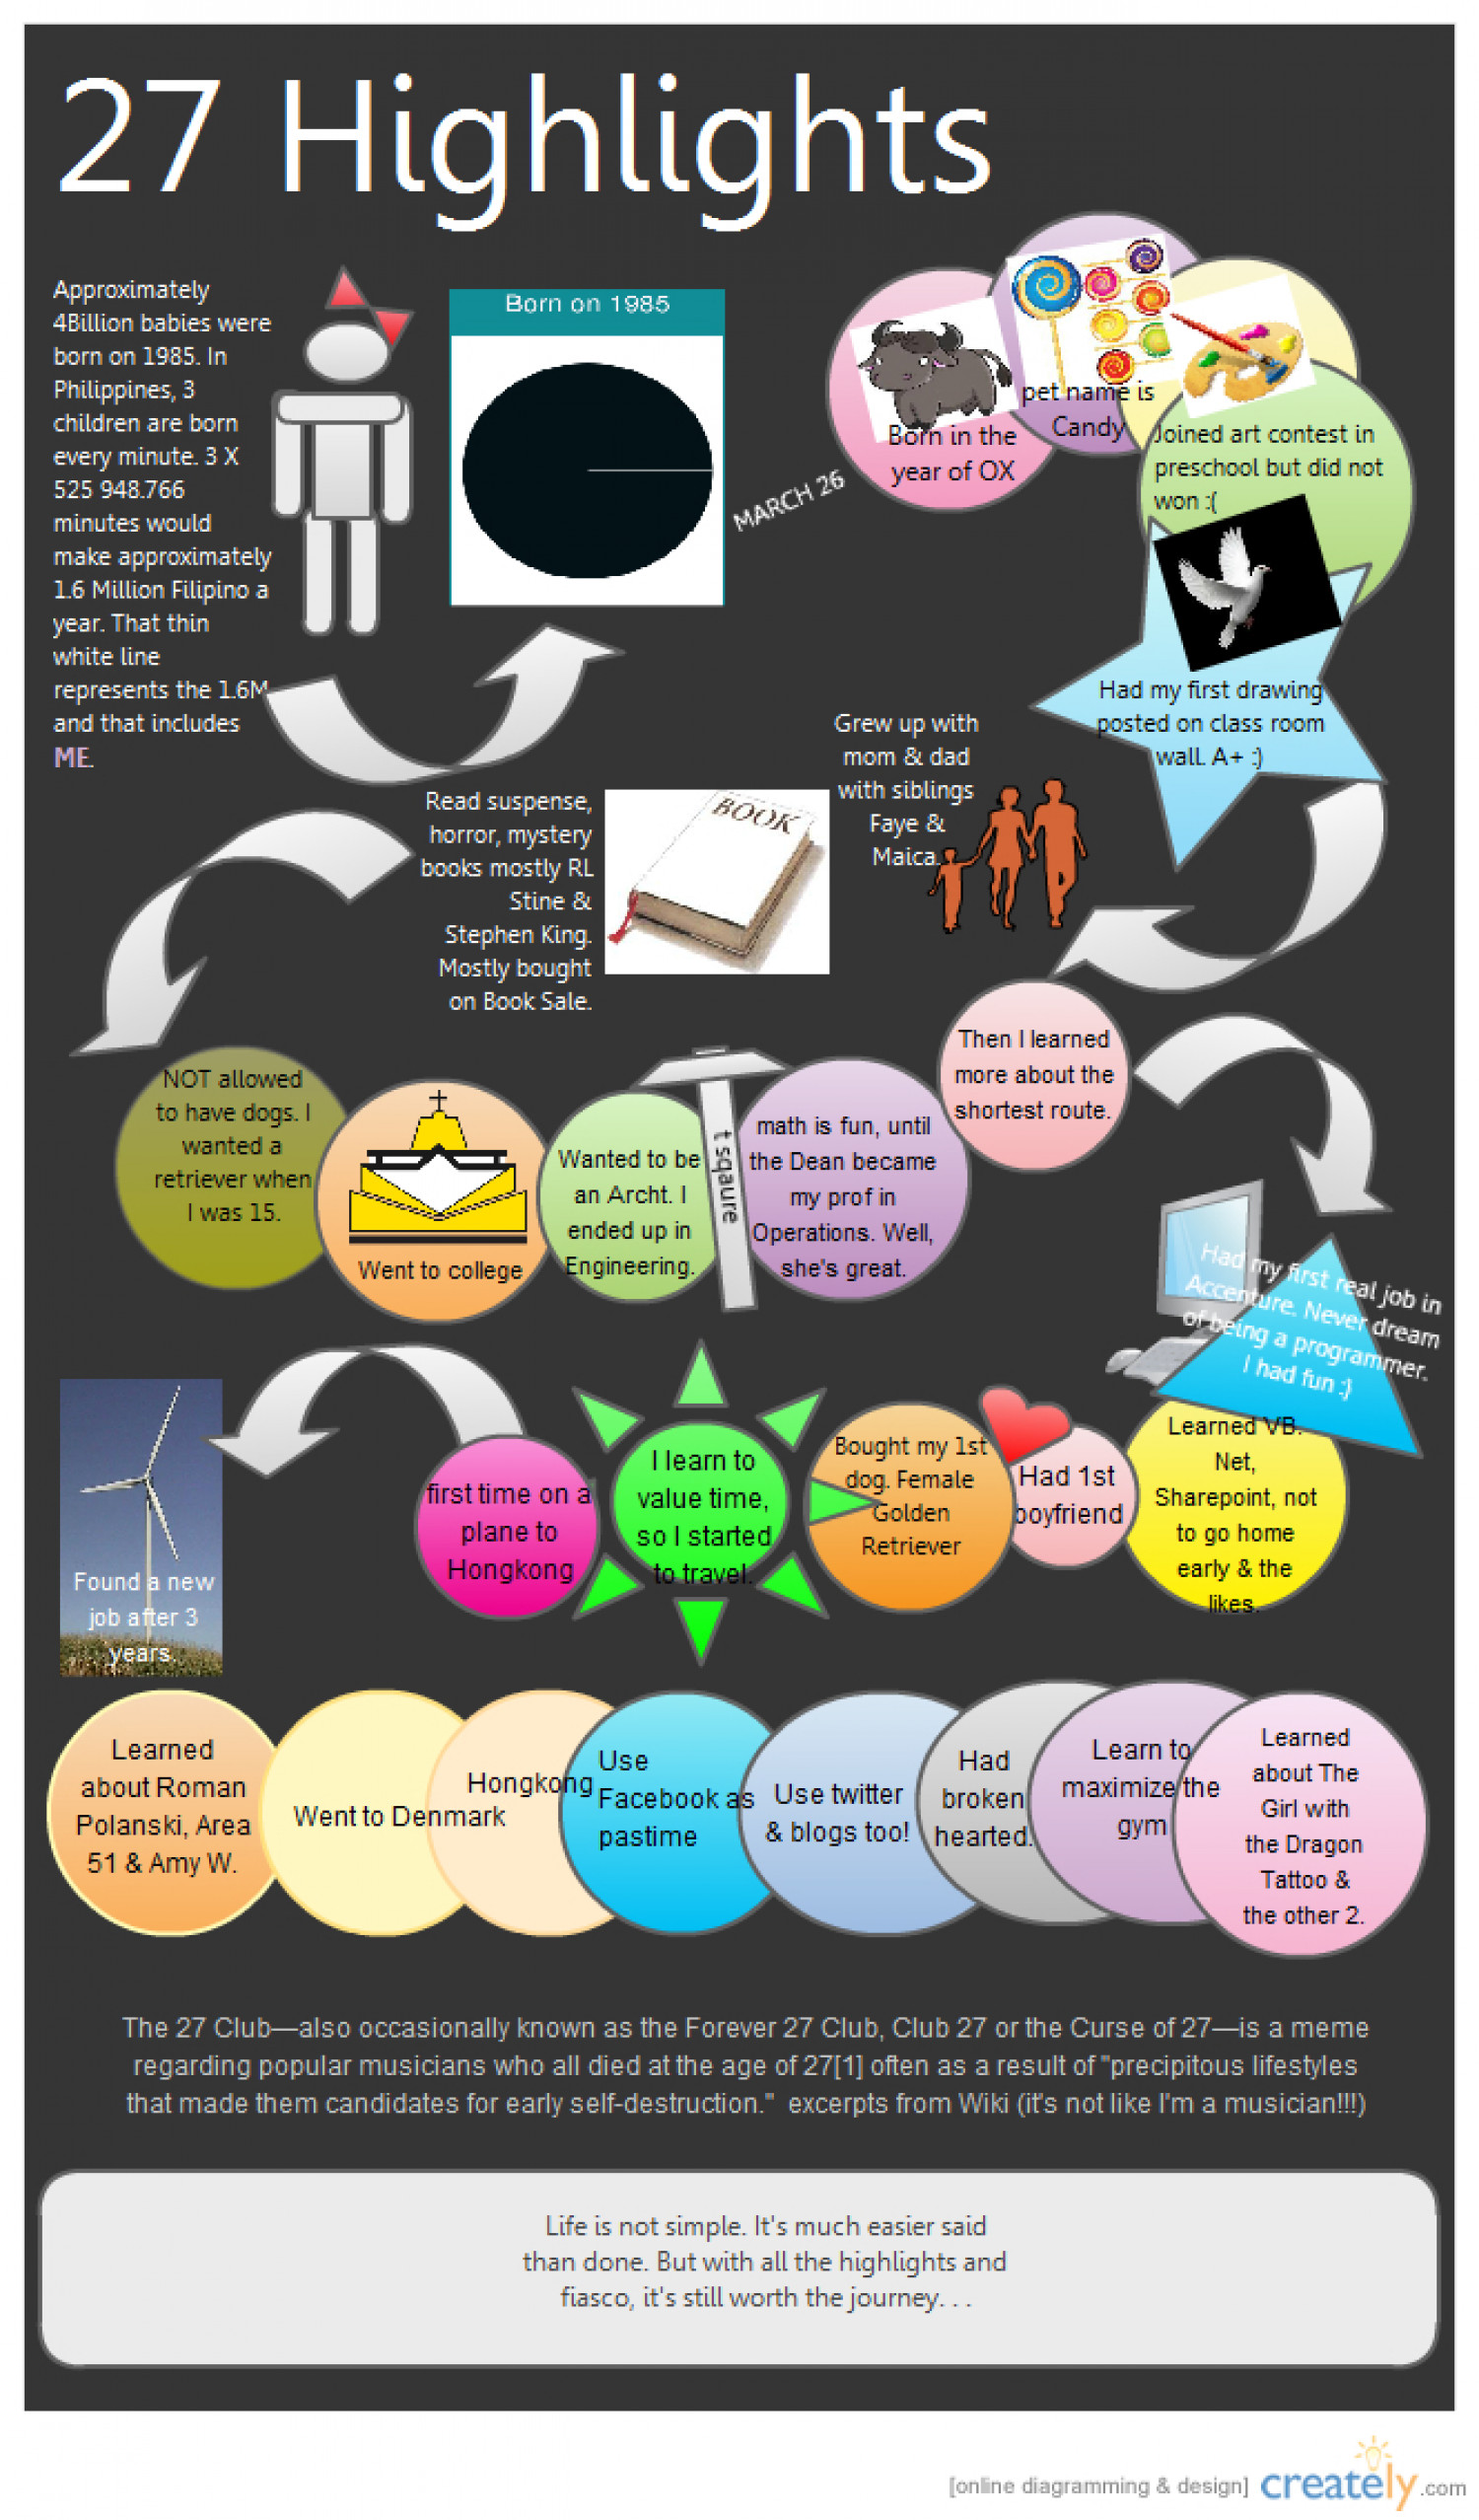 Vortex of Phylogenesis Infographic